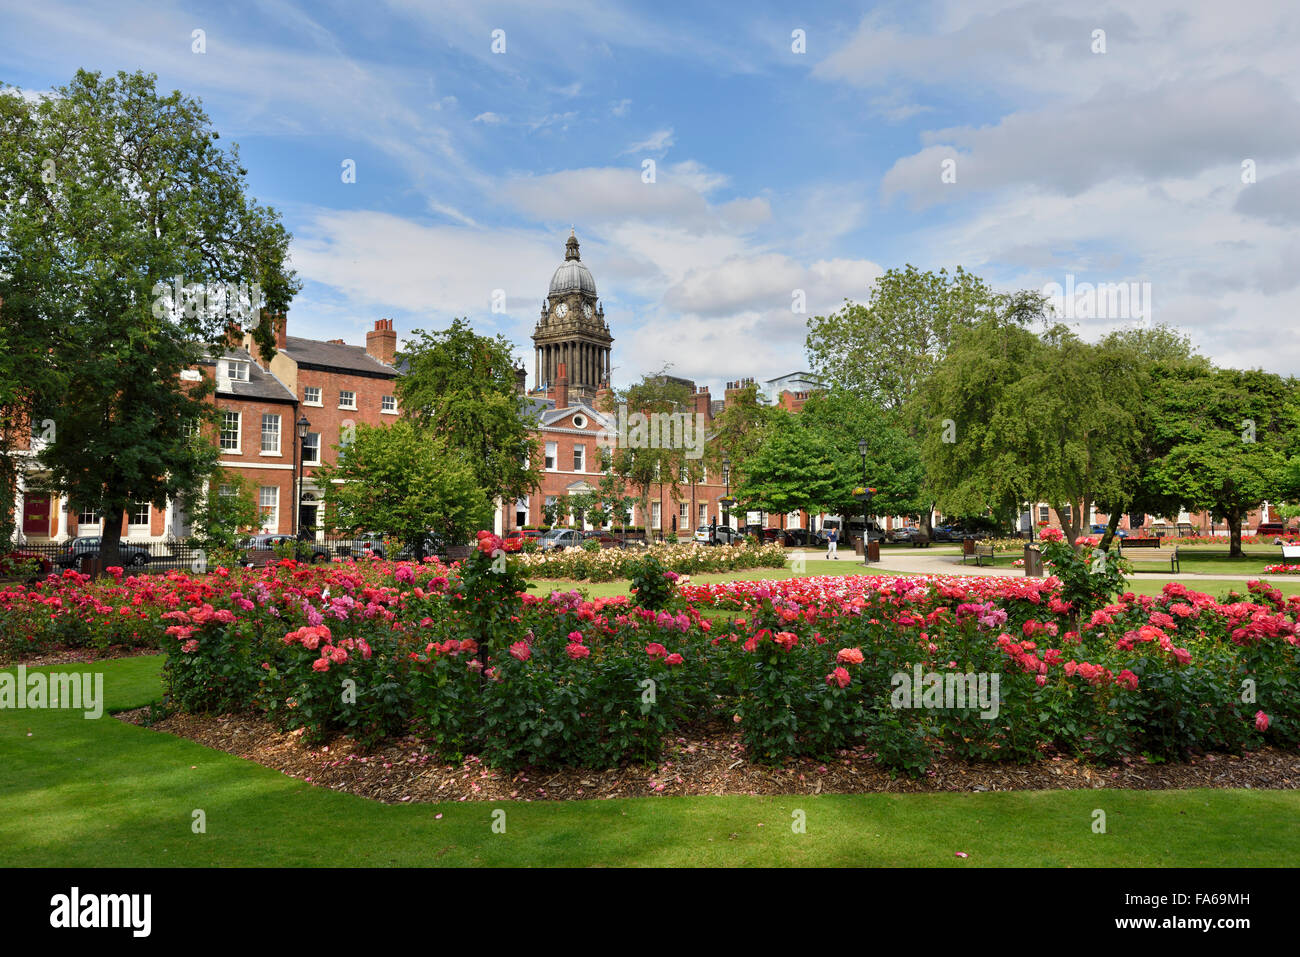 Park Square Leeds, with the clock tower of Leeds Town Hall visible in the background, Leeds, West Yorkshire, England - Stock Image